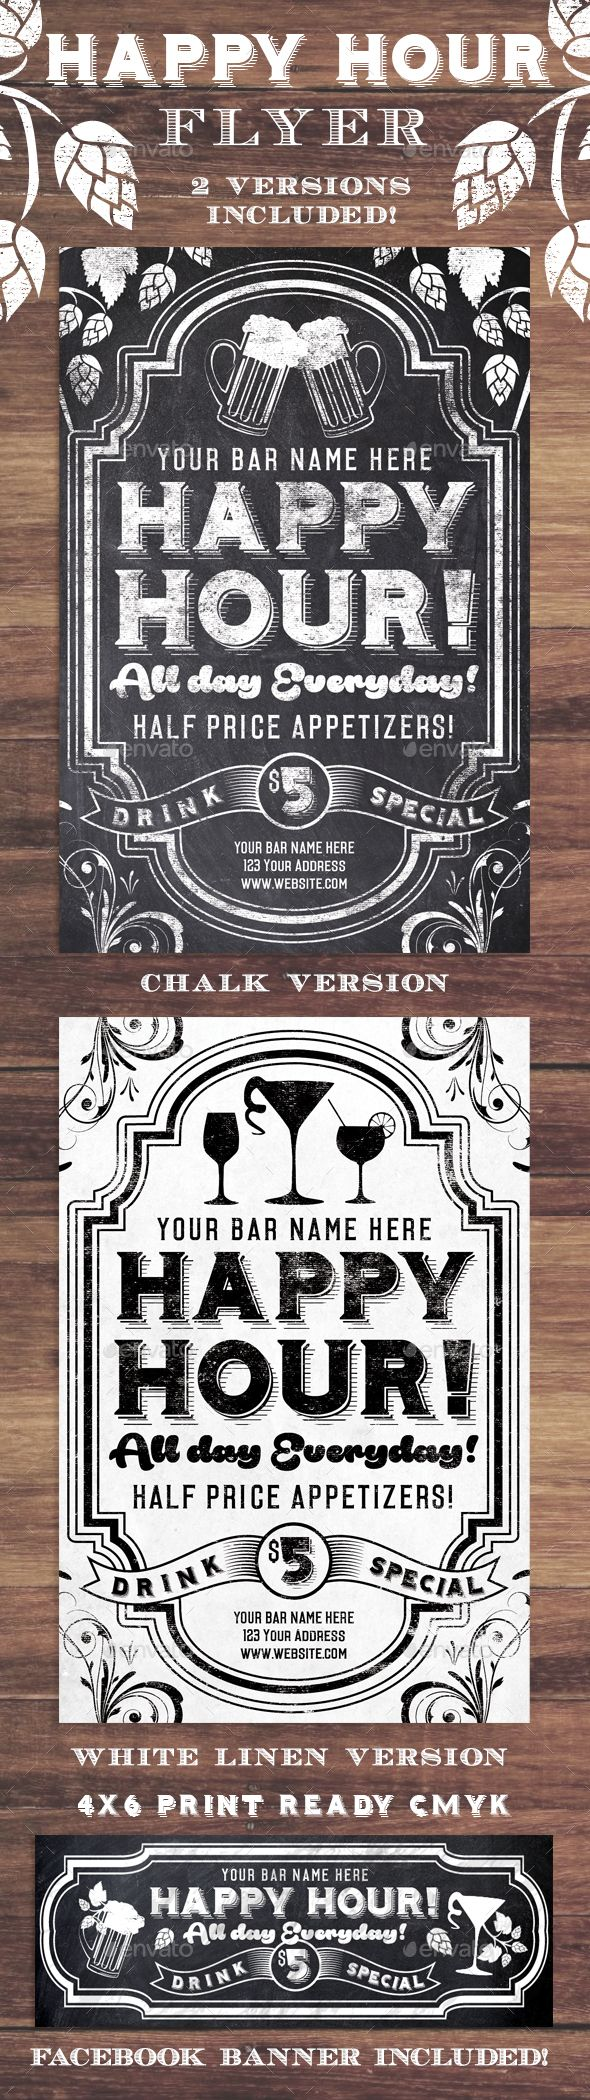 Chalk Happy Hour Flyer Invite — Photoshop PSD #music #banner • Available here → https://graphicriver.net/item/chalk-happy-hour-flyer-invite/14031565?ref=pxcr